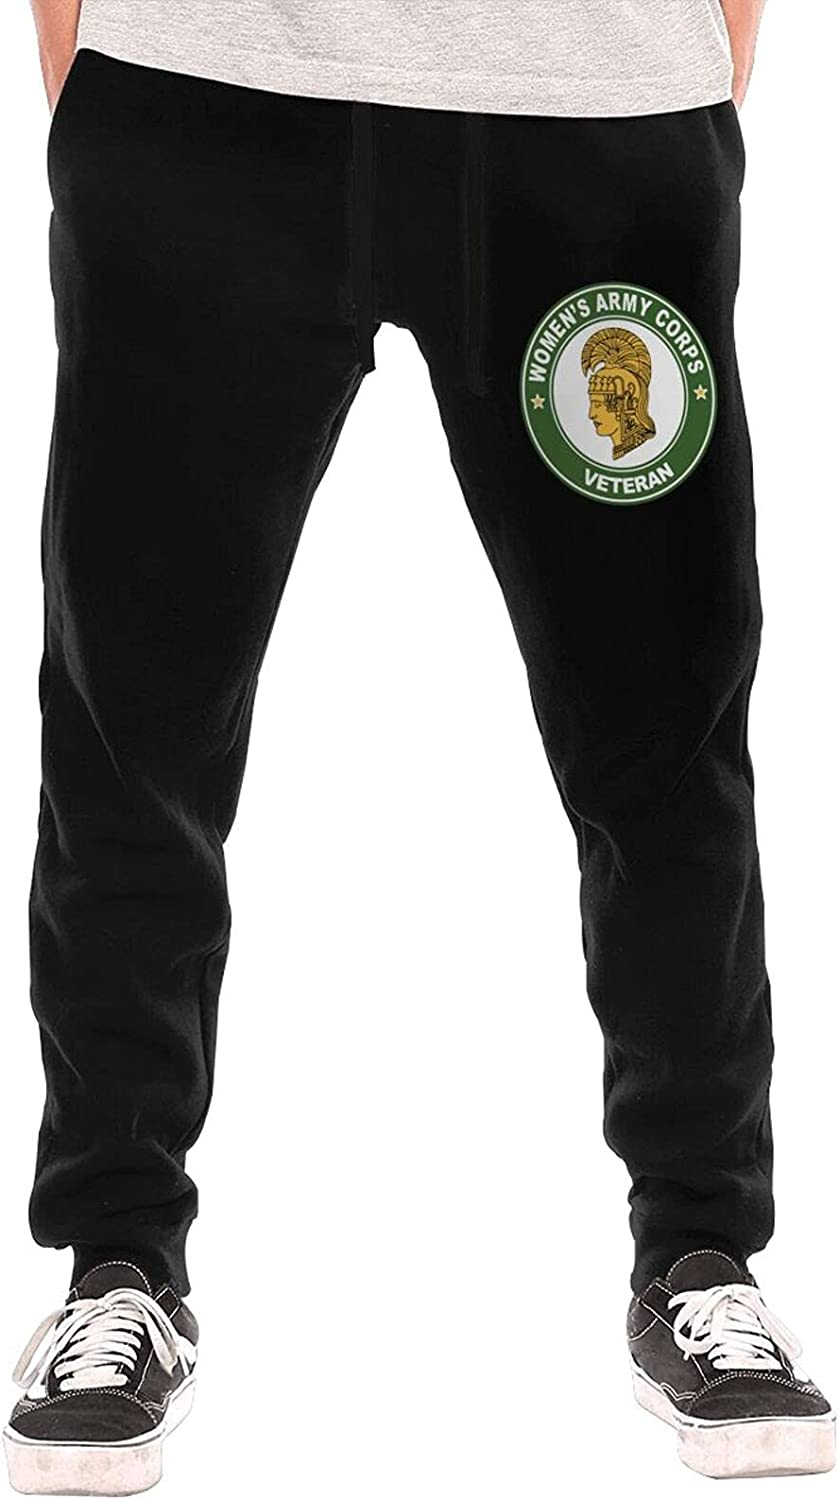 Women's Army Corps Sales Veteran Sweatpants Jogger Pants Work for excellence Mens